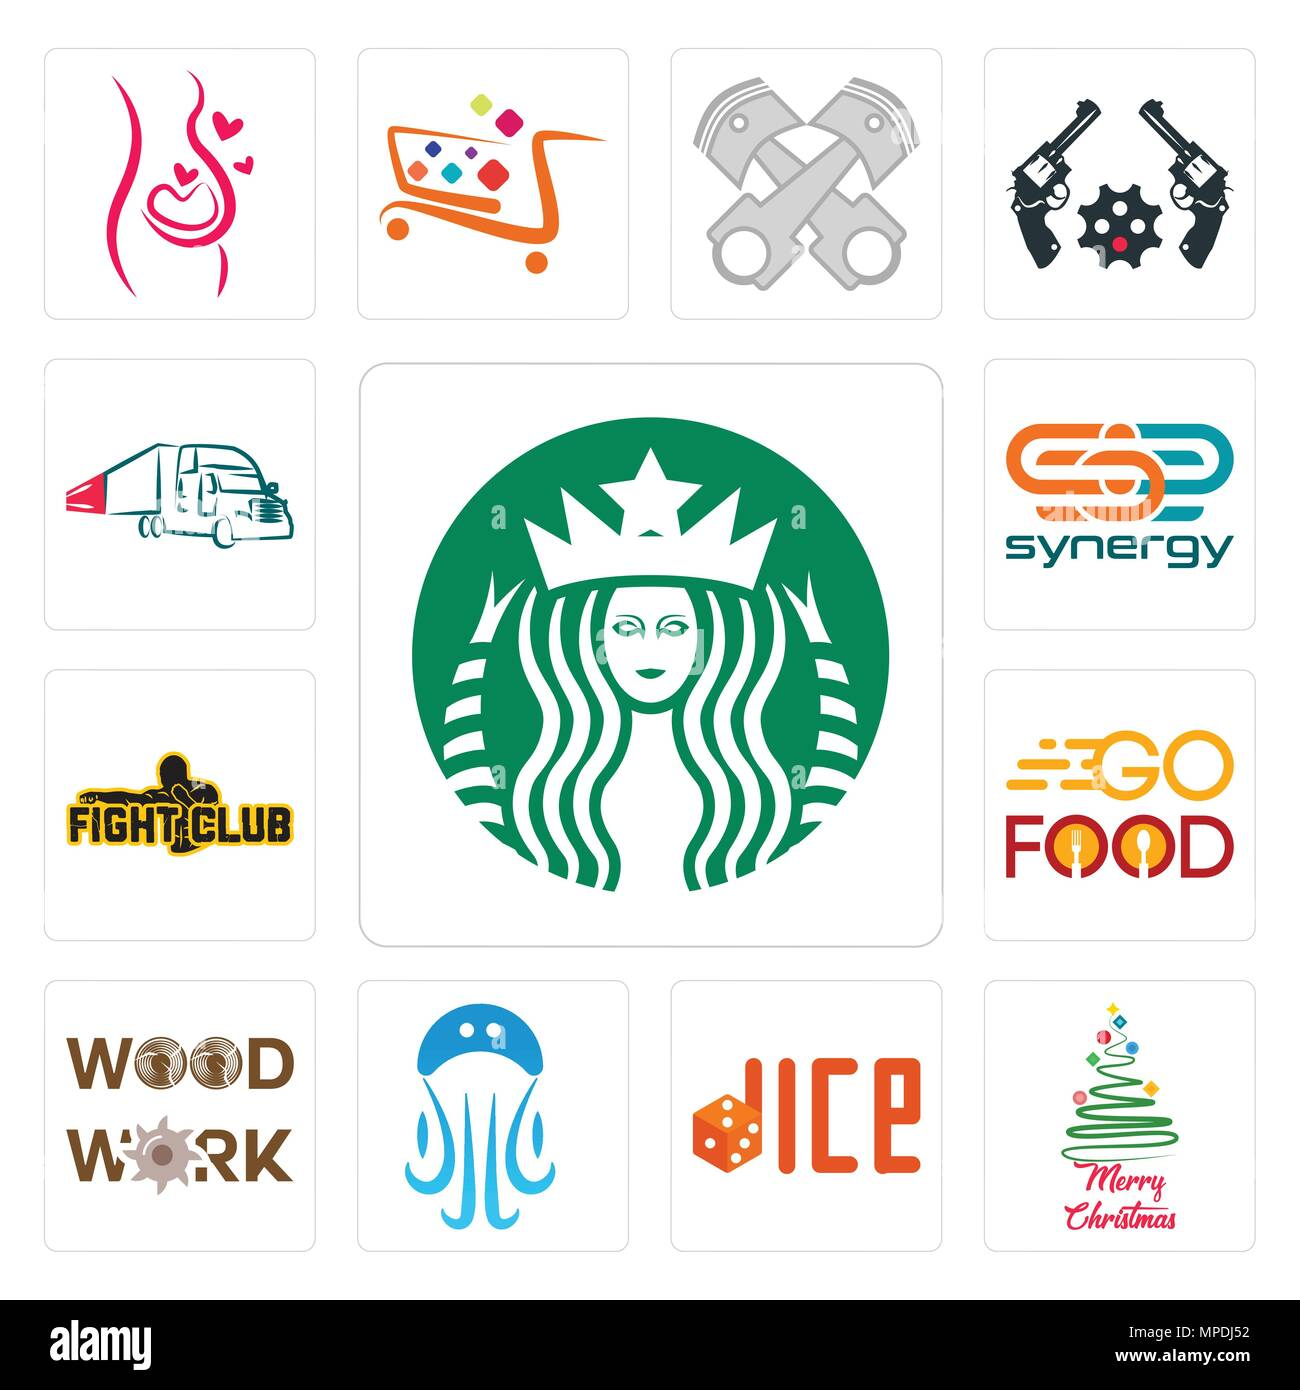 set of 13 simple editable icons such as starbucks merry christmas dice jellyfish woodwork go food fight club synergy truck company can be used - Starbucks Merry Christmas